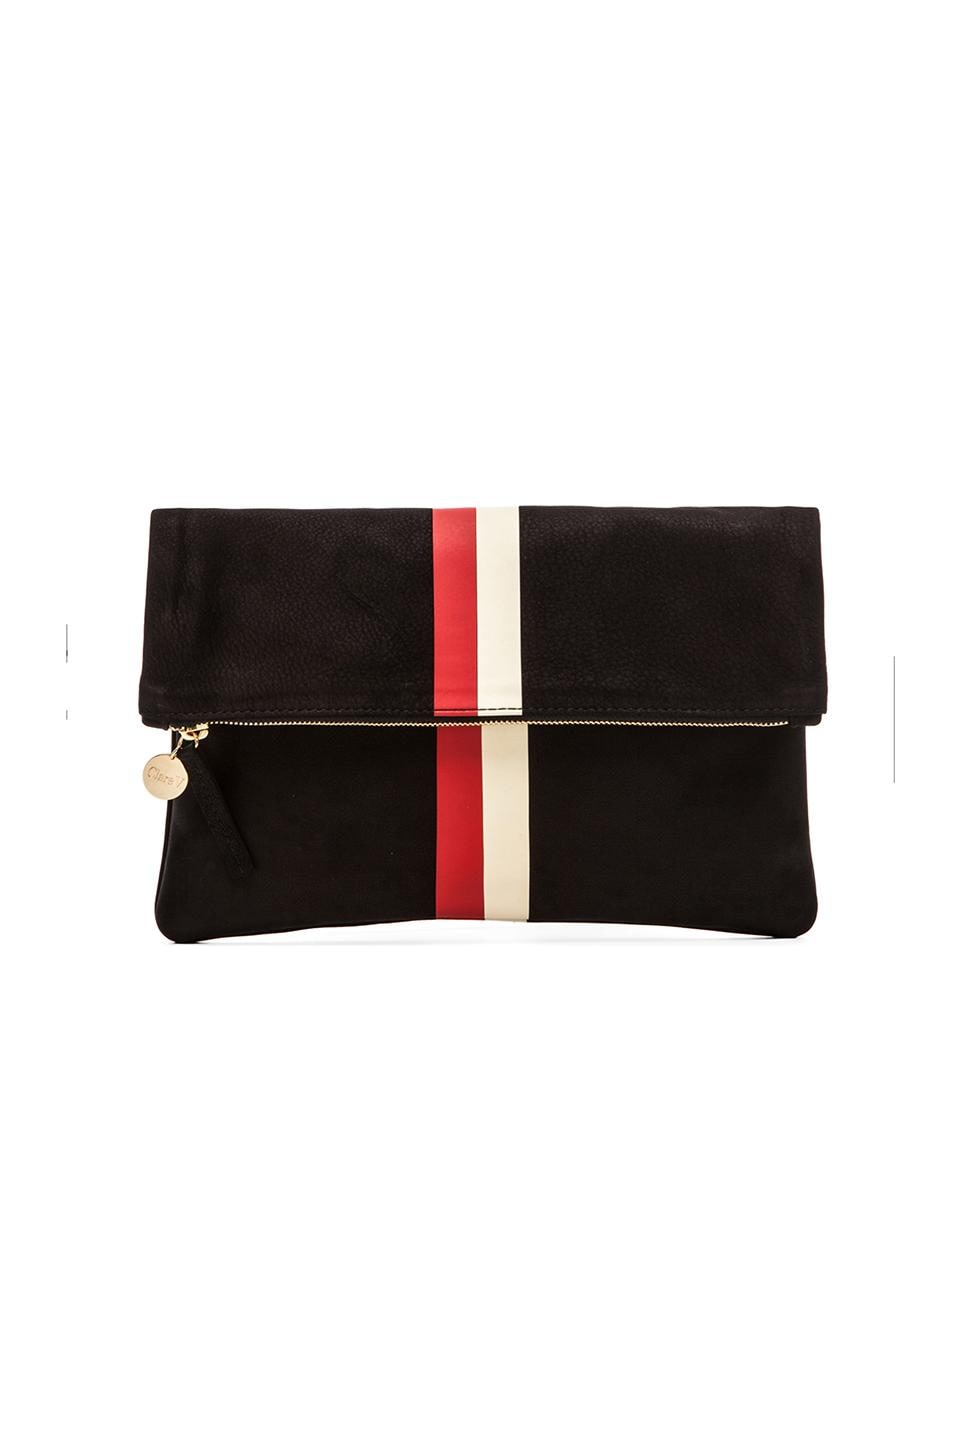 Clare V. Foldover Clutch in Black w/ Red & Cream Stripes